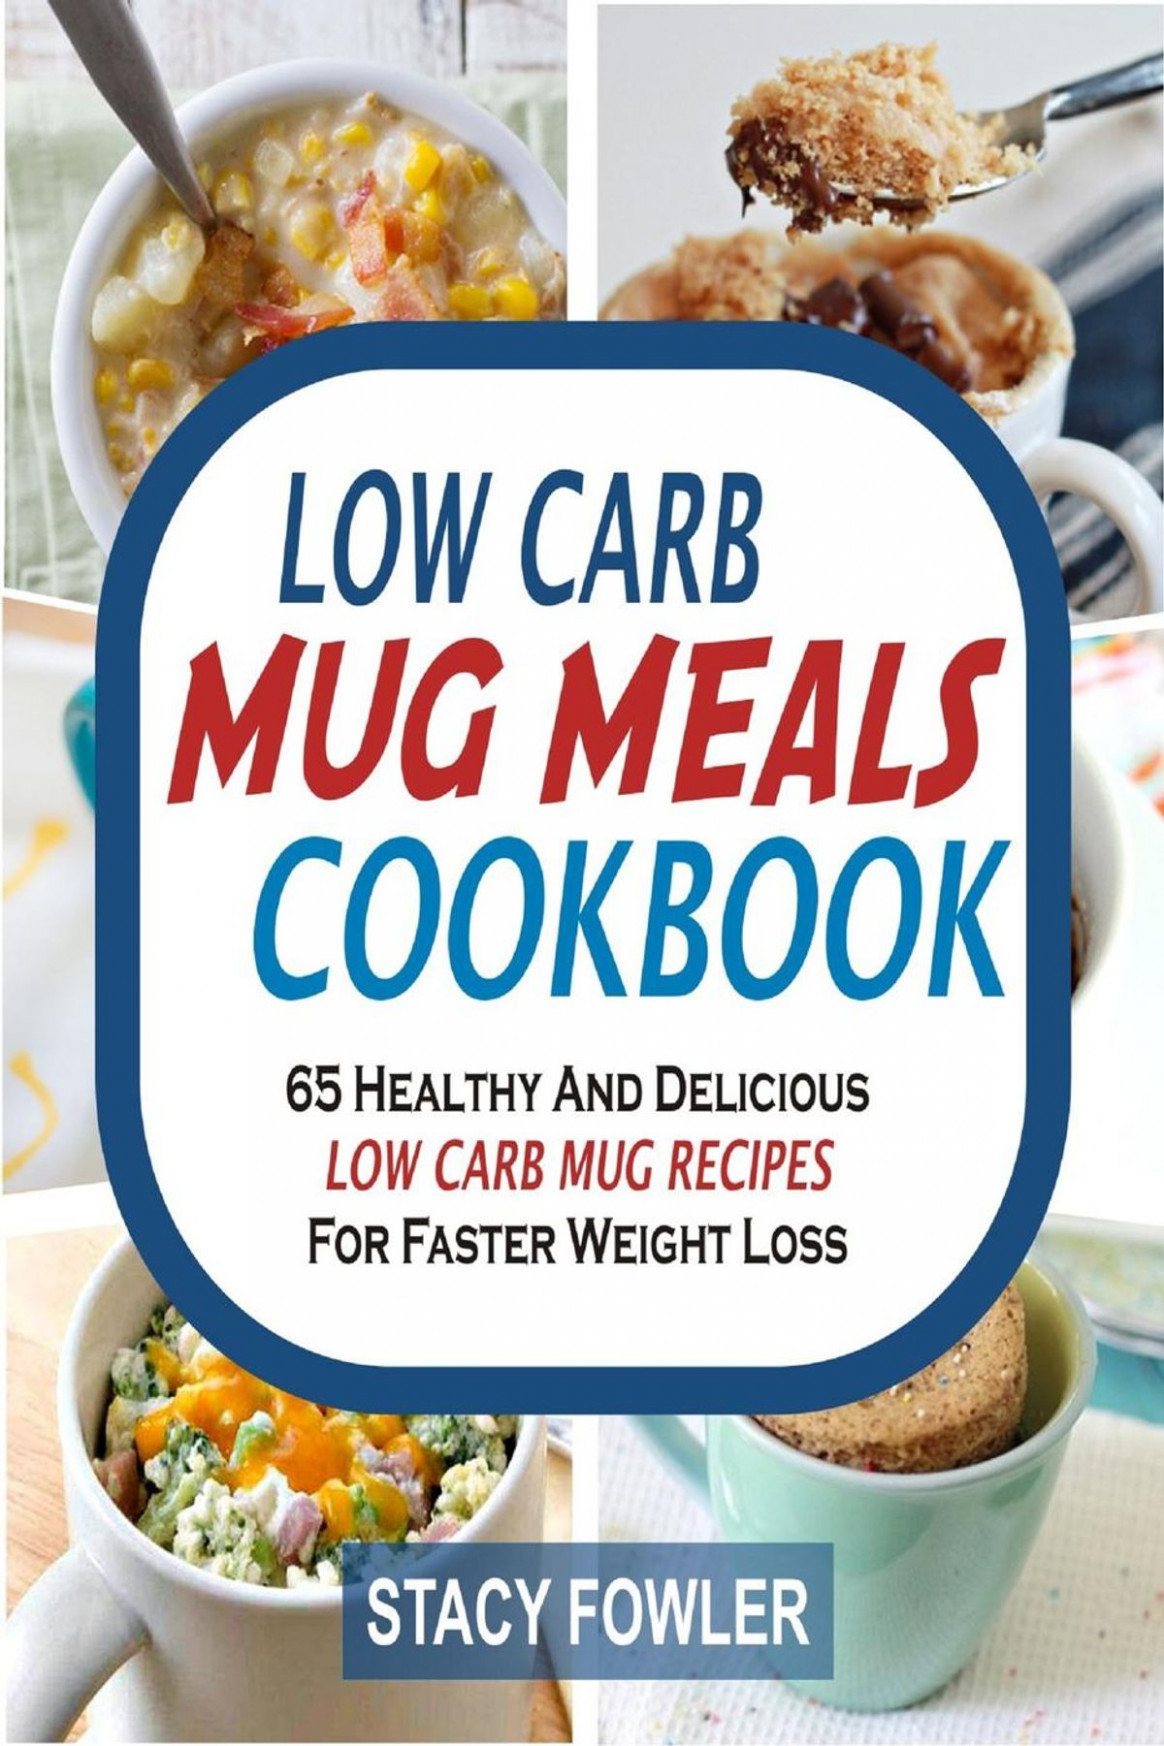 Low Carb Mug Meals Cookbook: 14 Healthy And Delicious Low Carb Mug Recipes  For Faster Weight Loss ebook by Stacy Fowler - Rakuten Kobo - mug recipes dinner